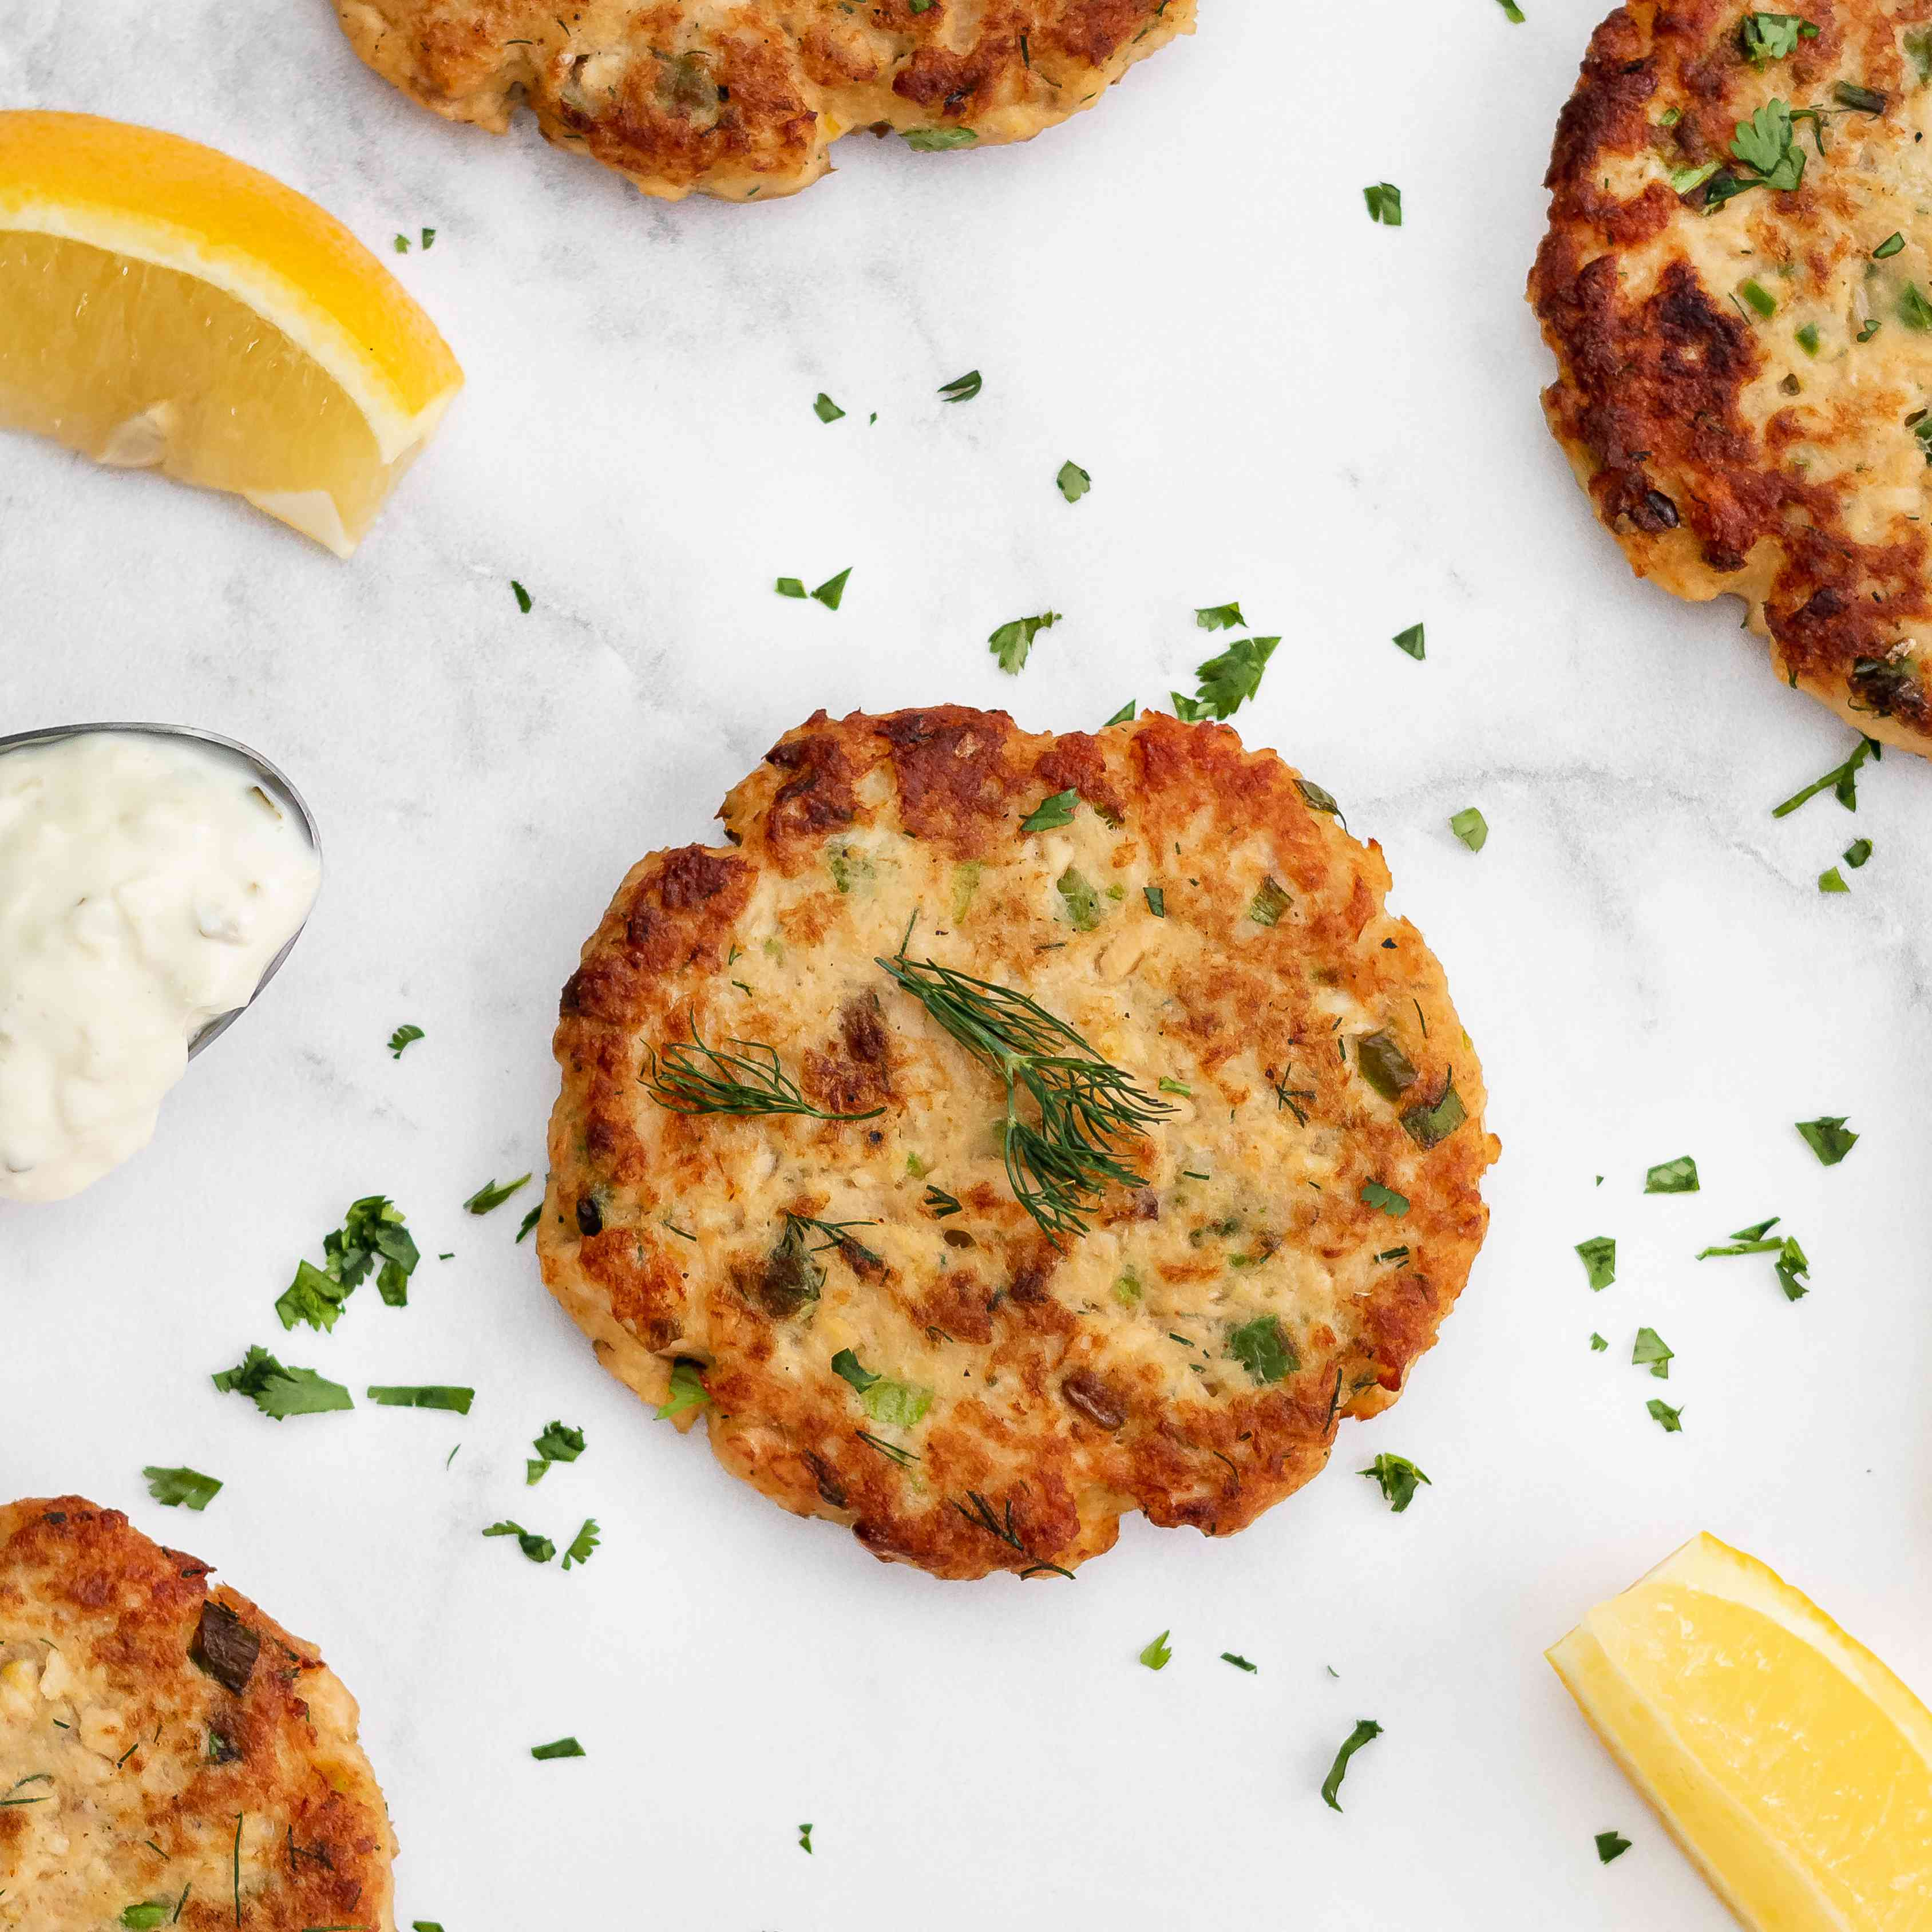 Salmon patties on a white background with a dip and lemon wedges.